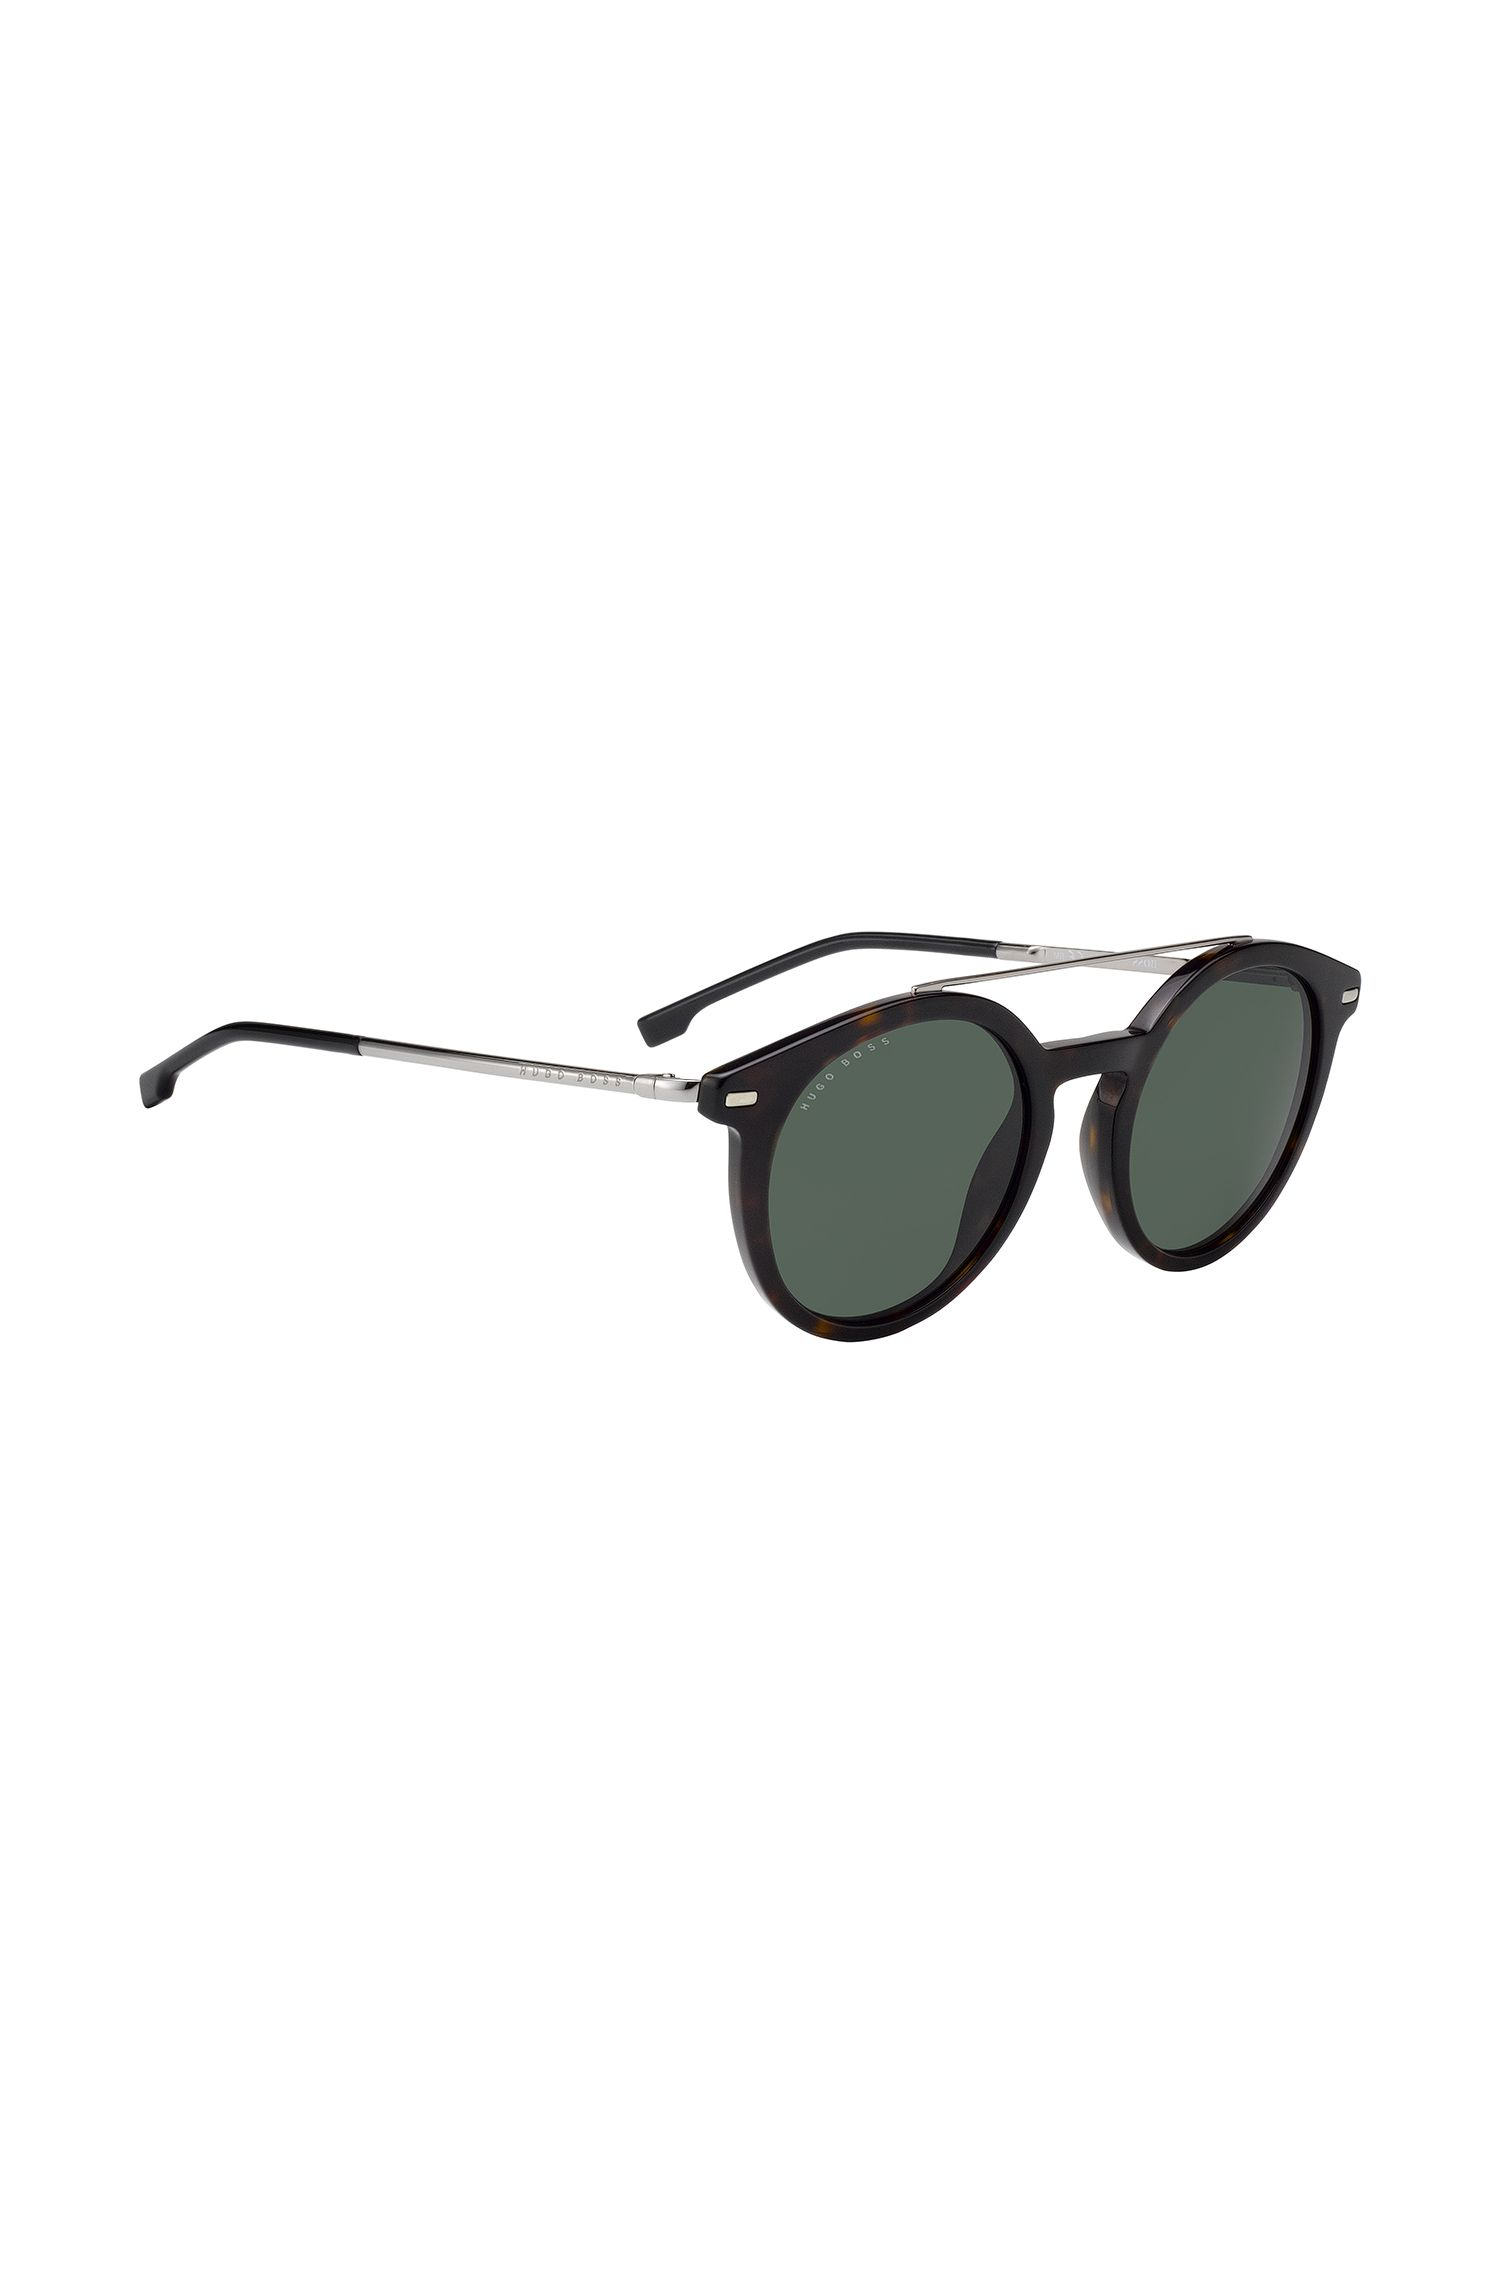 Round-framed sunglasses in metal and acetate